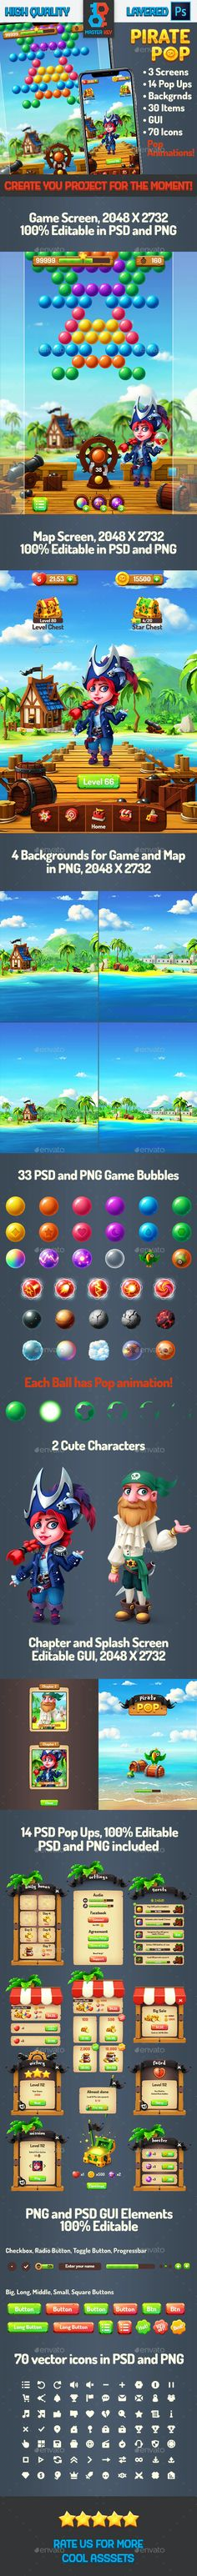 Pirate Pop Bubble Shooter Game by Master_Key | GraphicRiver Bubble Shooter Games, Game Gui, Pop Bubble, Master Key, Map Background, Splash Screen, Pop Games, Retina Display, Mobile Game